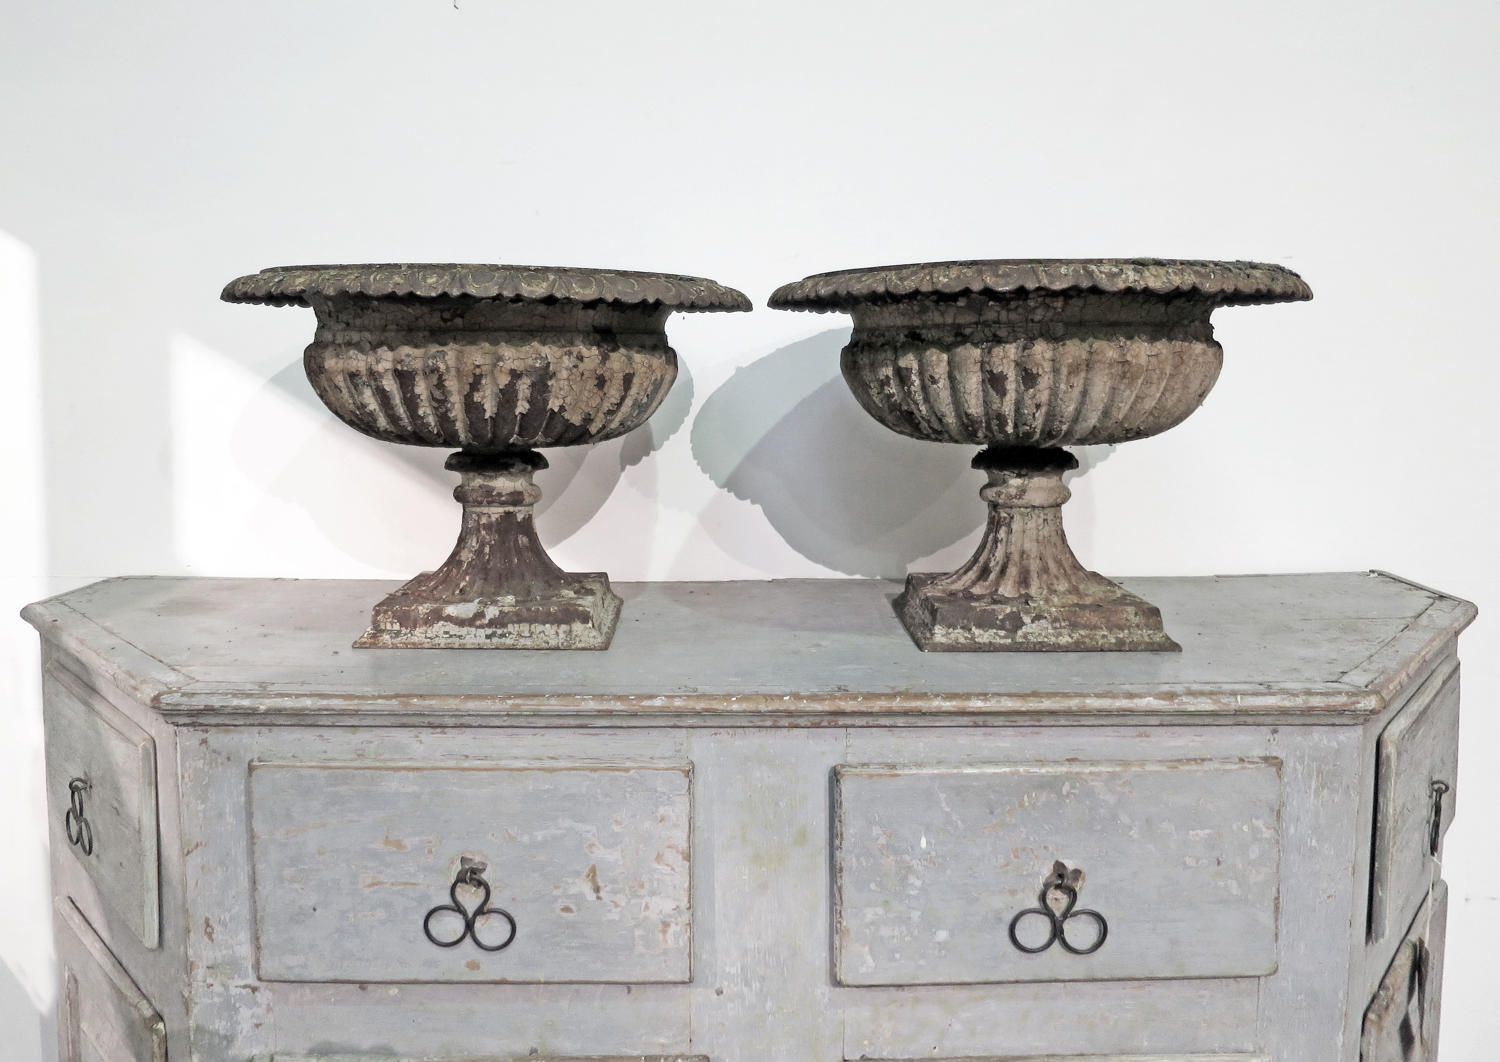 Pair of 19th c Cast Iron Urns